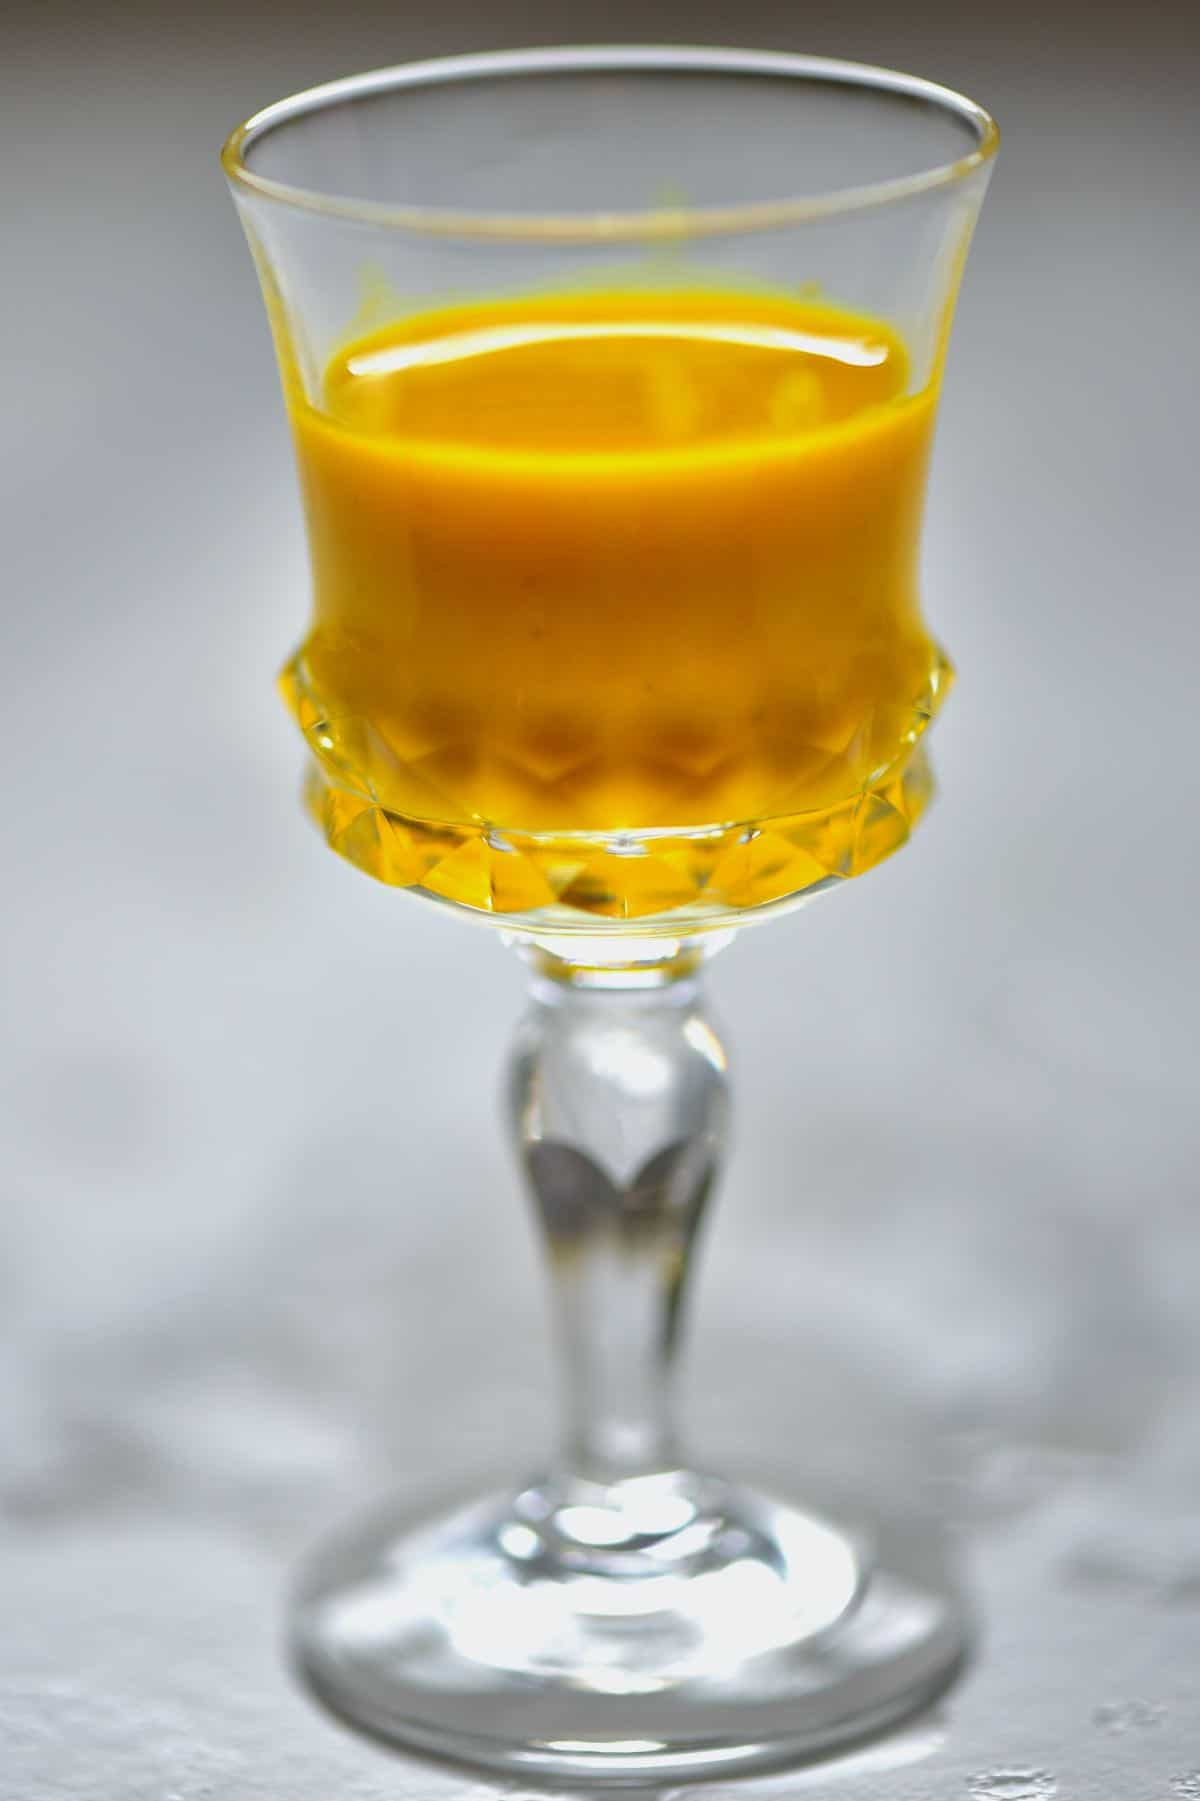 A small glass with turmeric juice